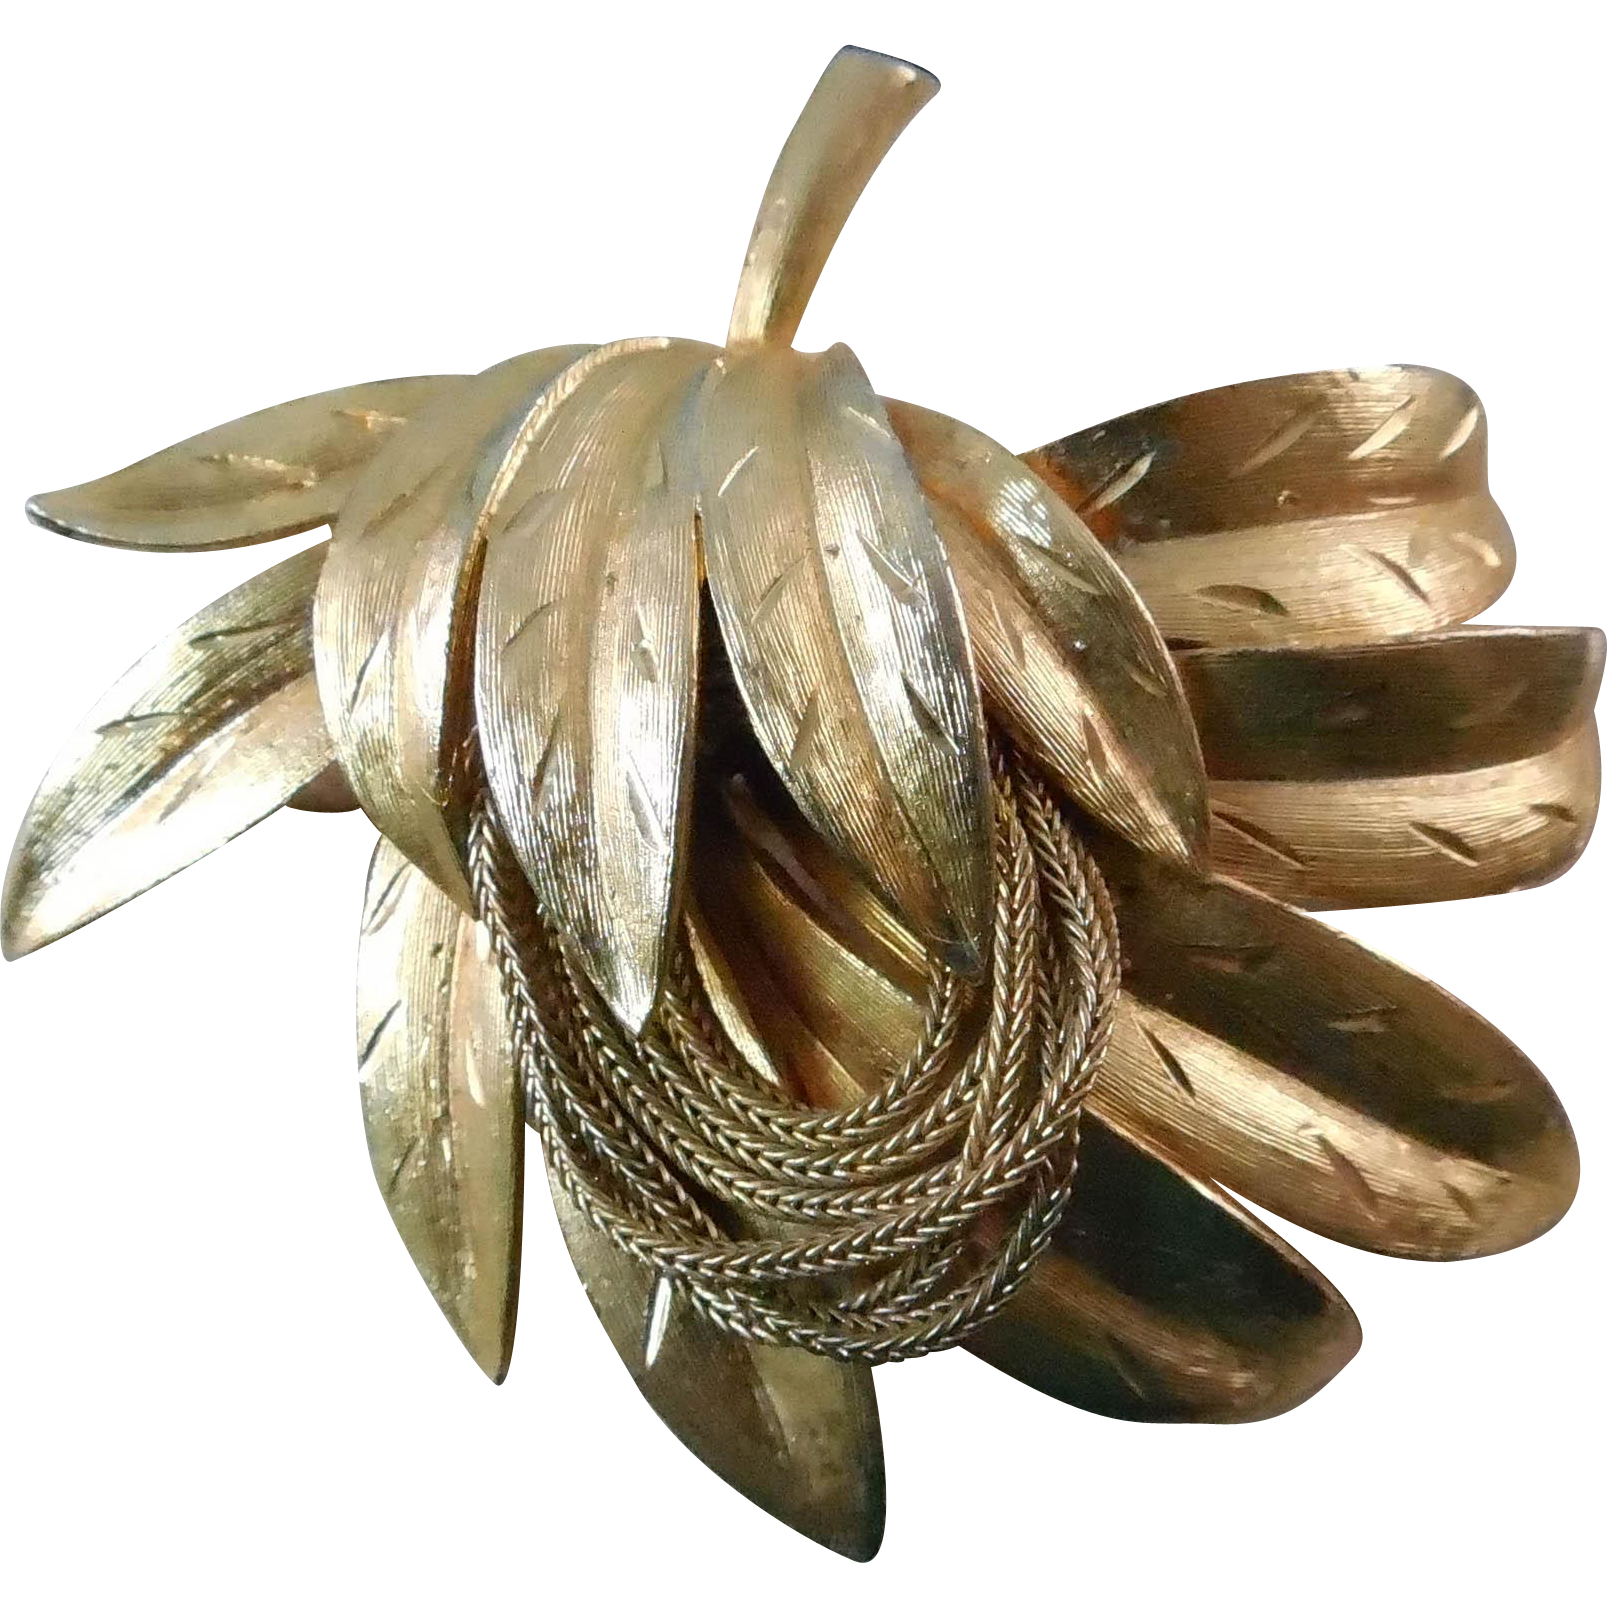 Vintage Kramer Brooch - Lovely Textured Botanical Brooch Enhanced With Chains